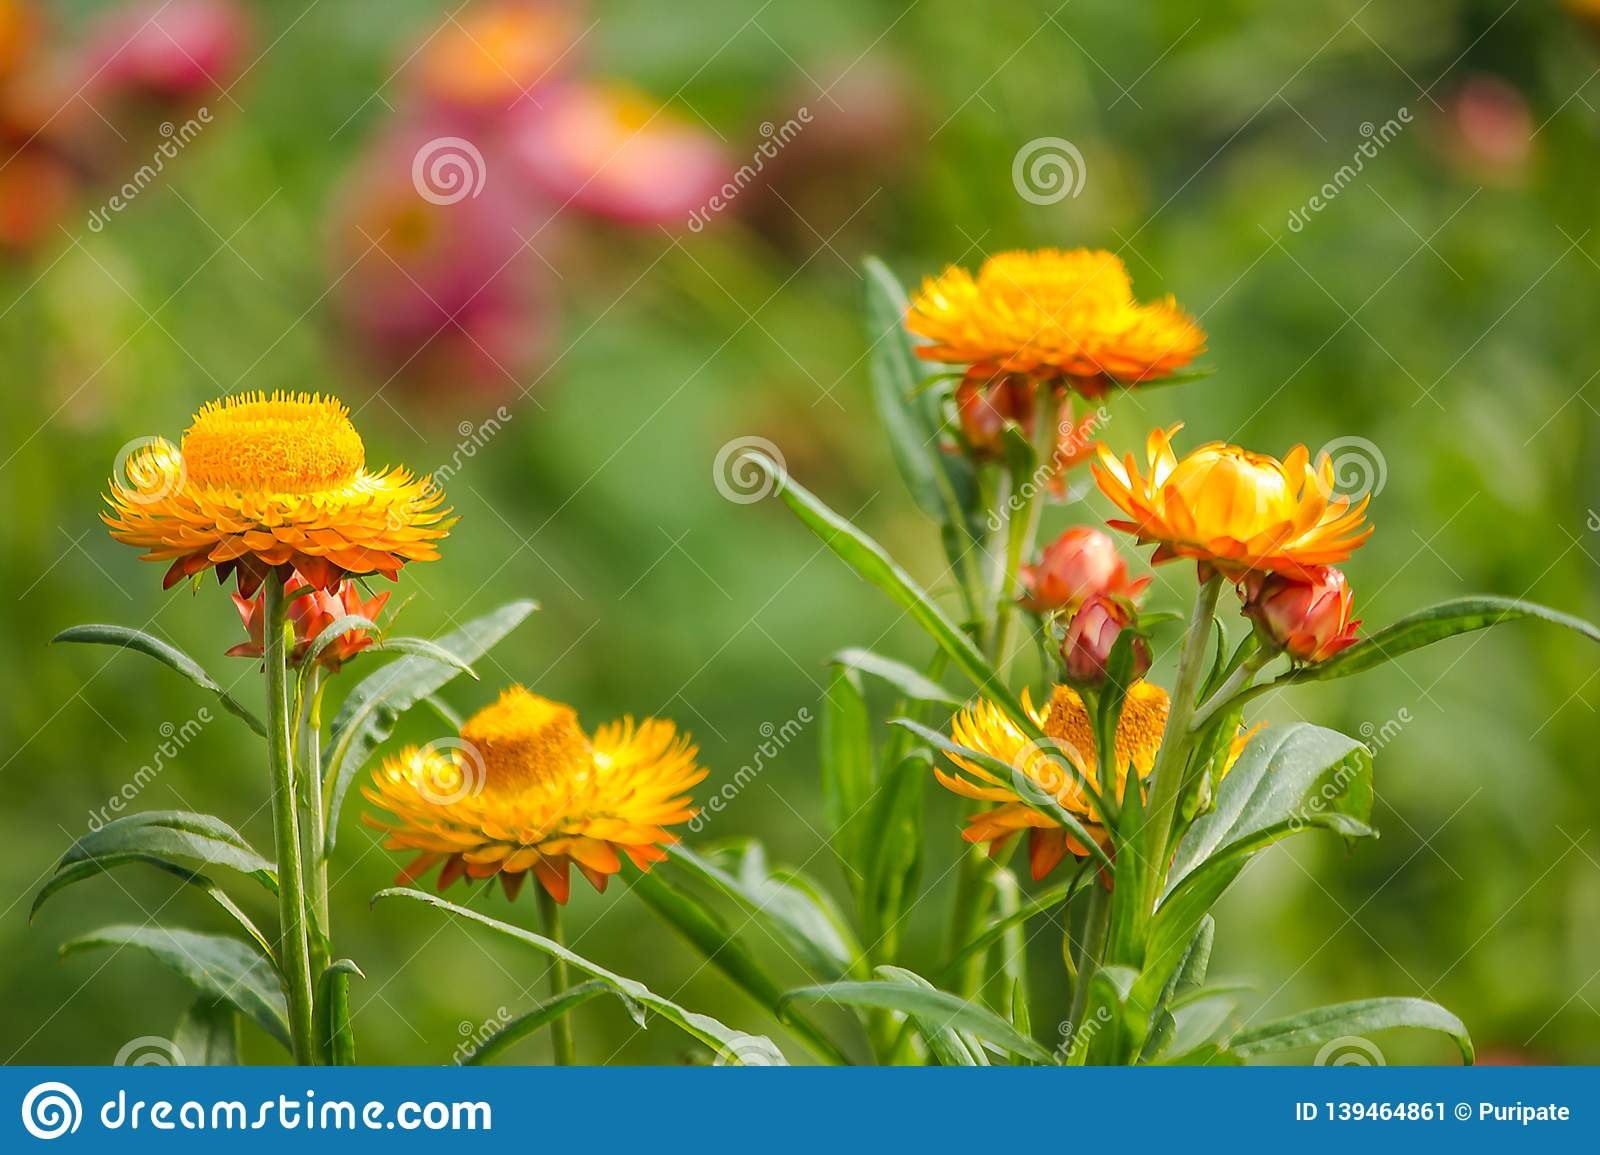 Helichrysum bracteatum is a flower that can last for a long time.